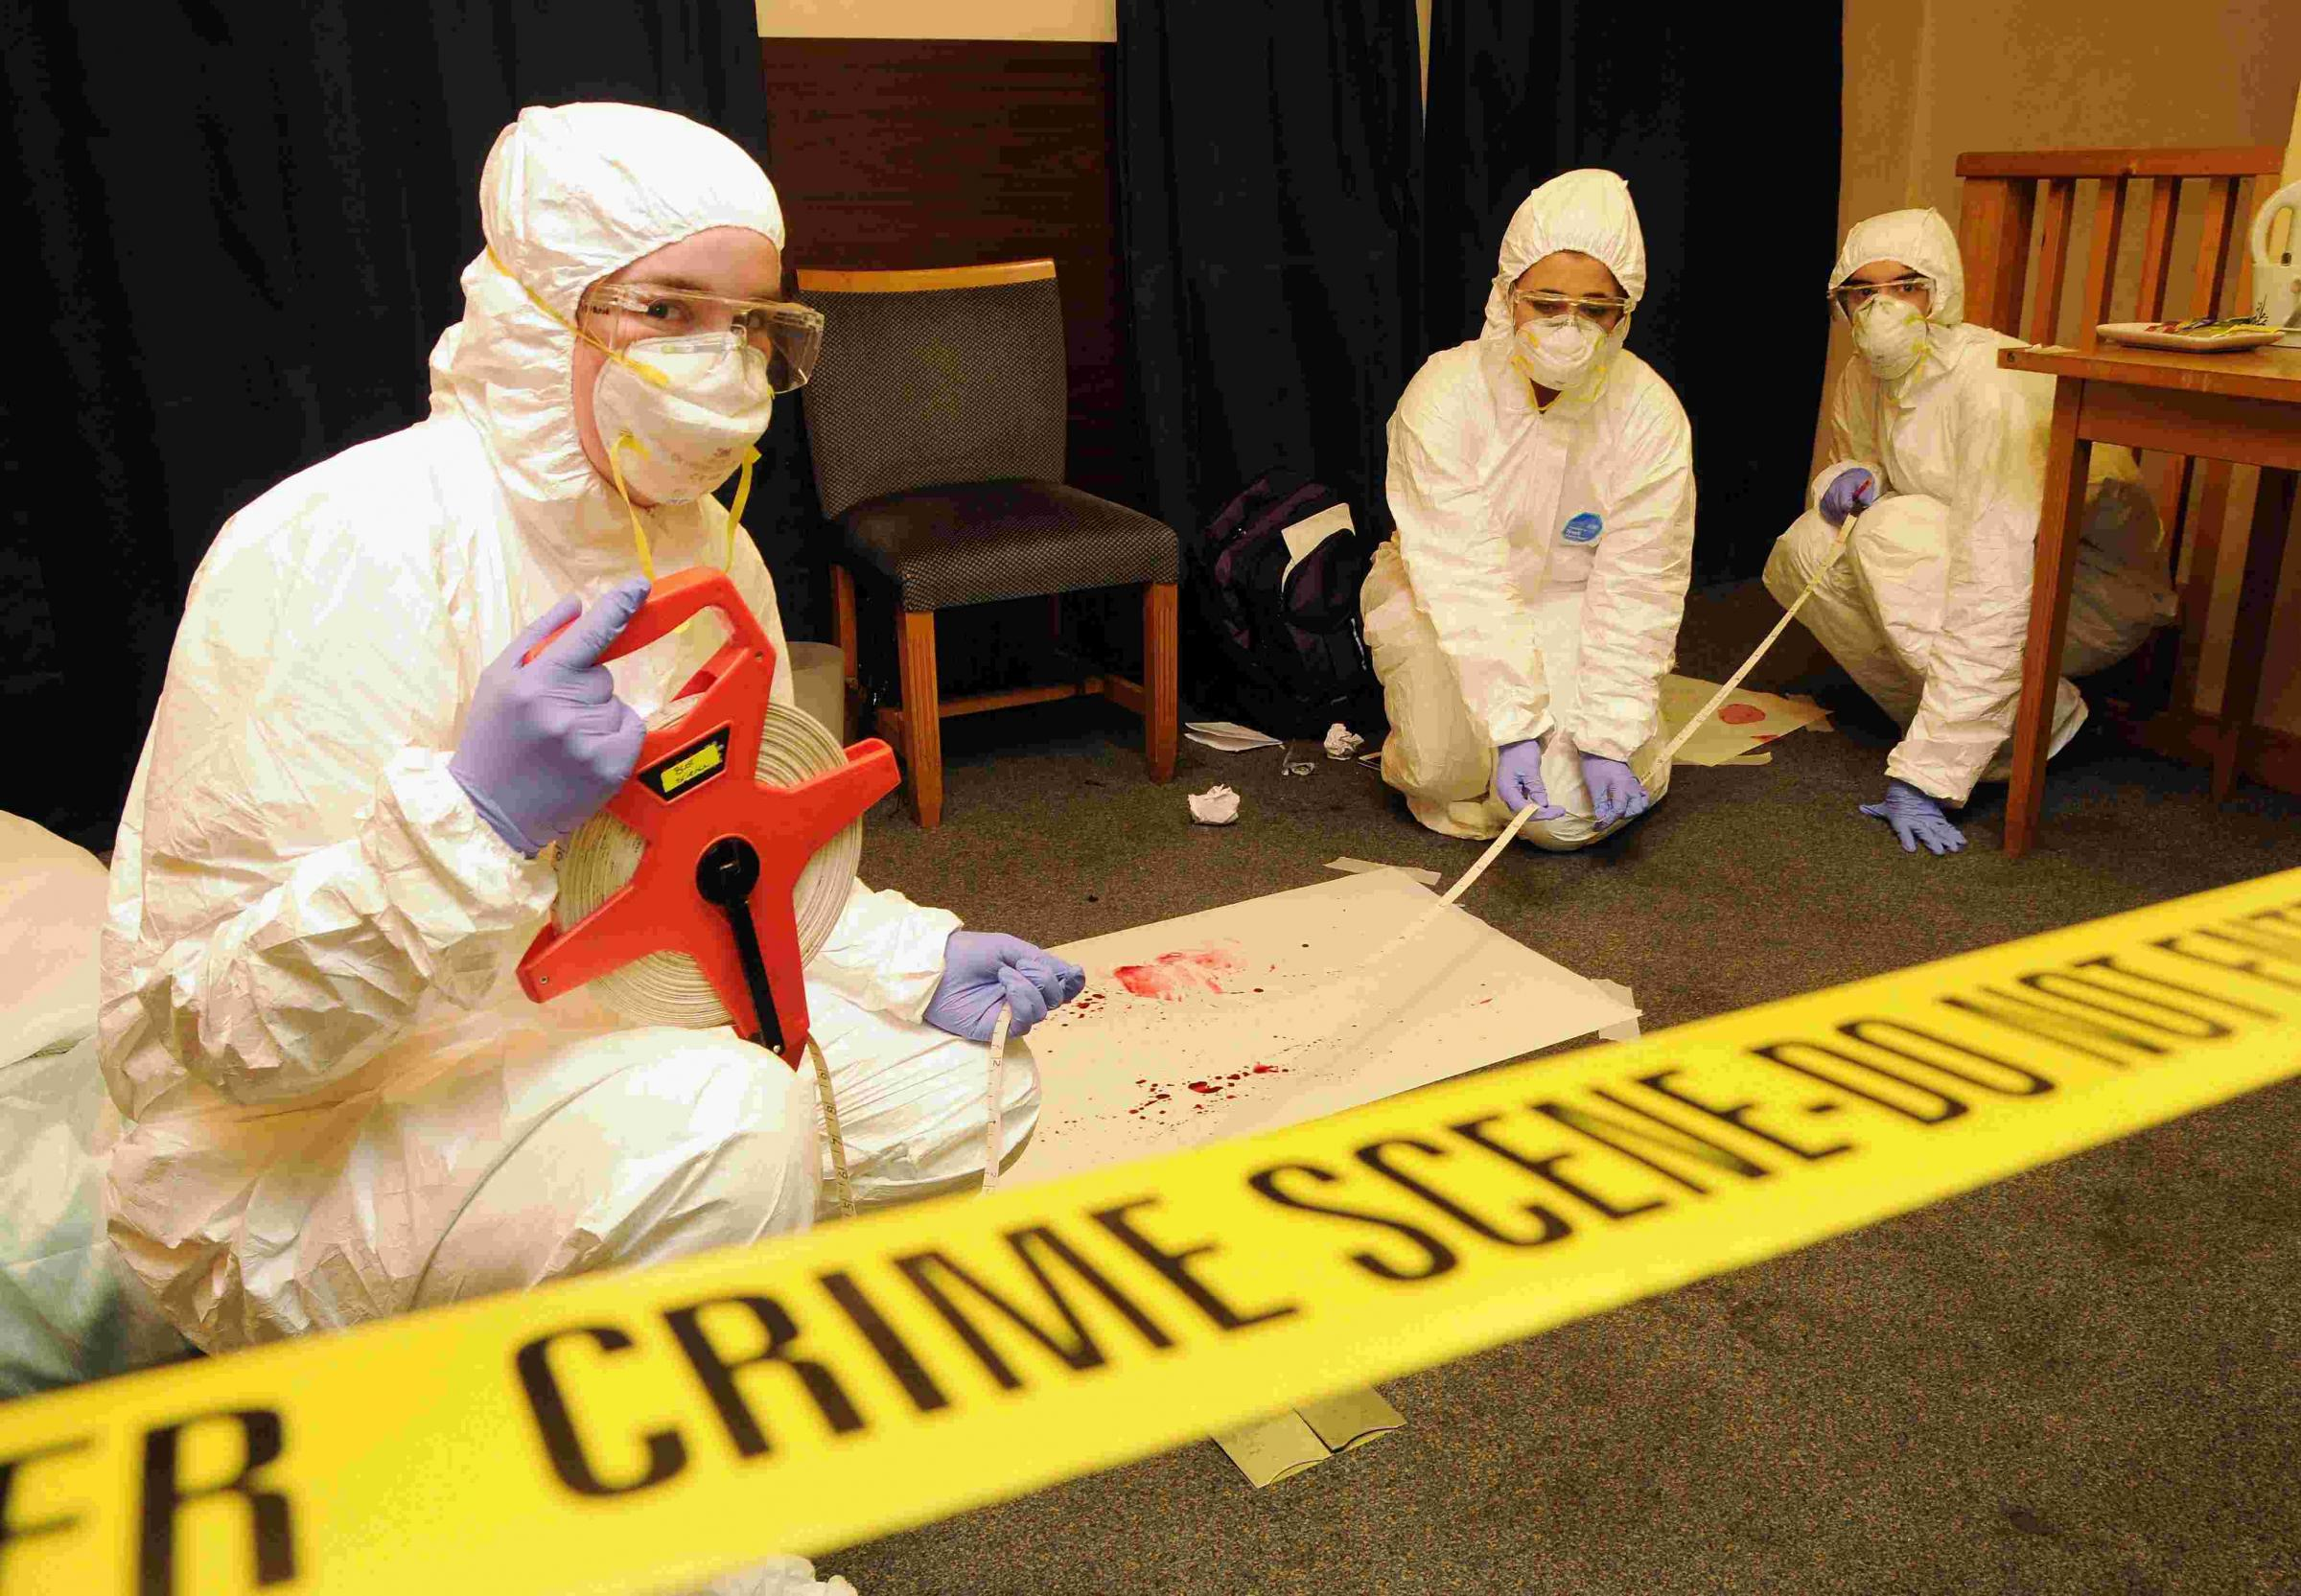 Melanie Patterson, Georgie Holder and Thomas Ash gather evidence in the hotel